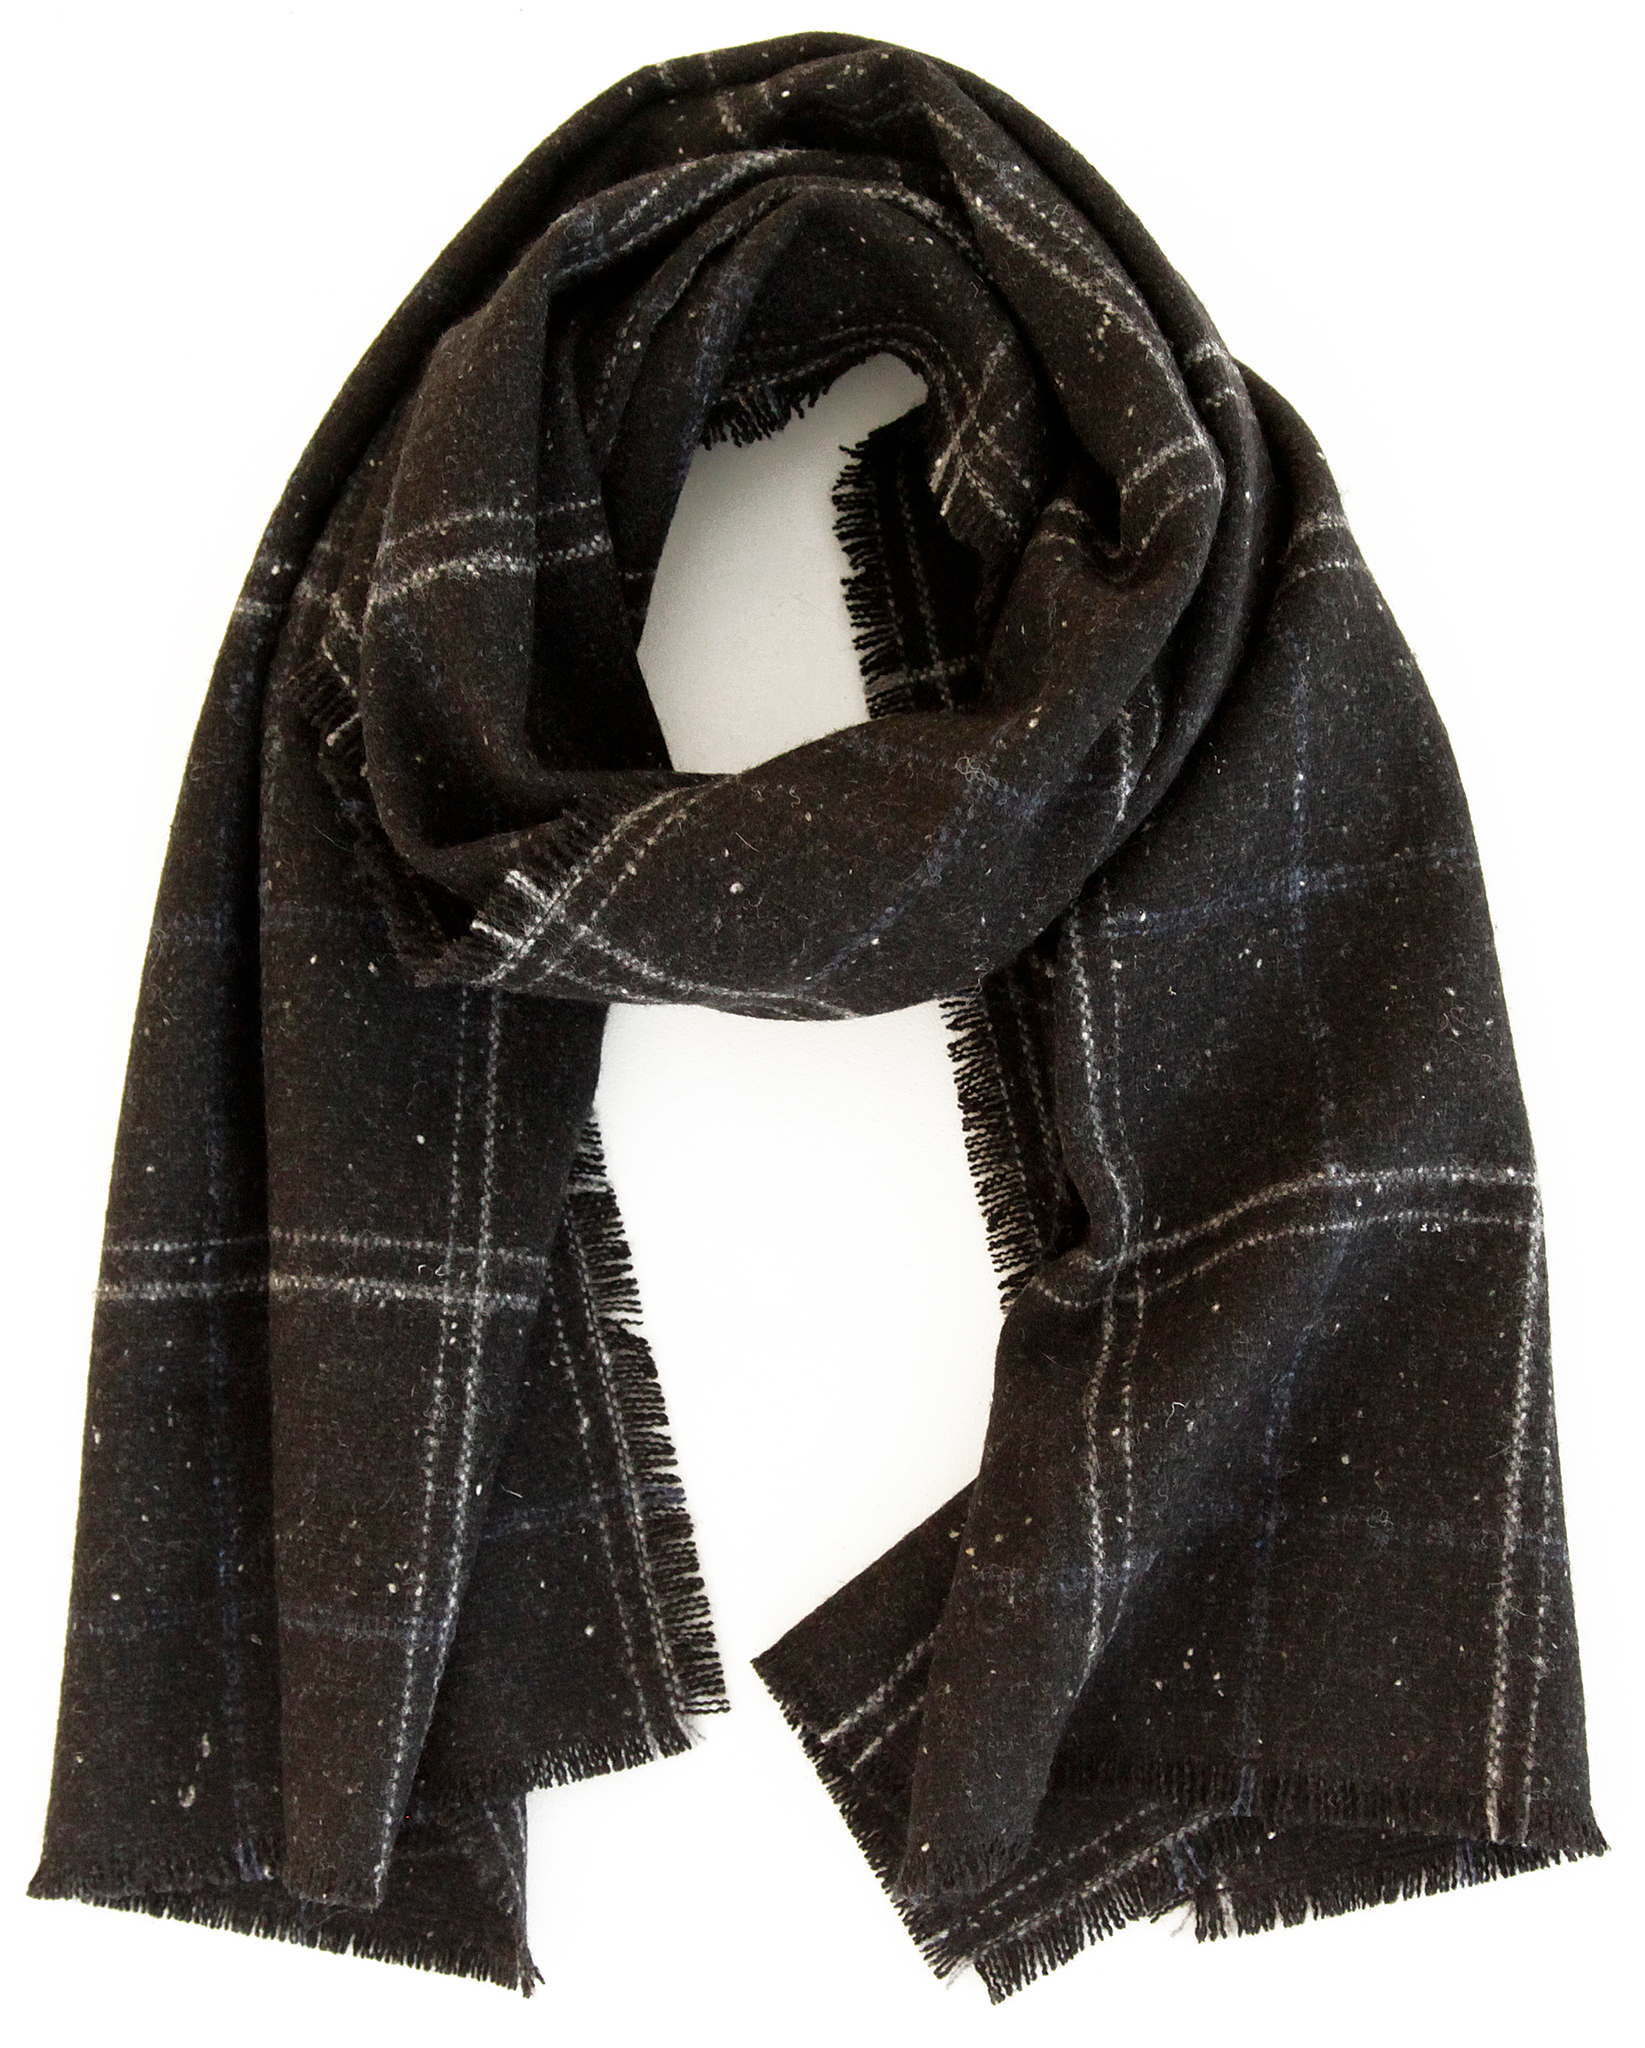 The Wool Windowpane Scarf